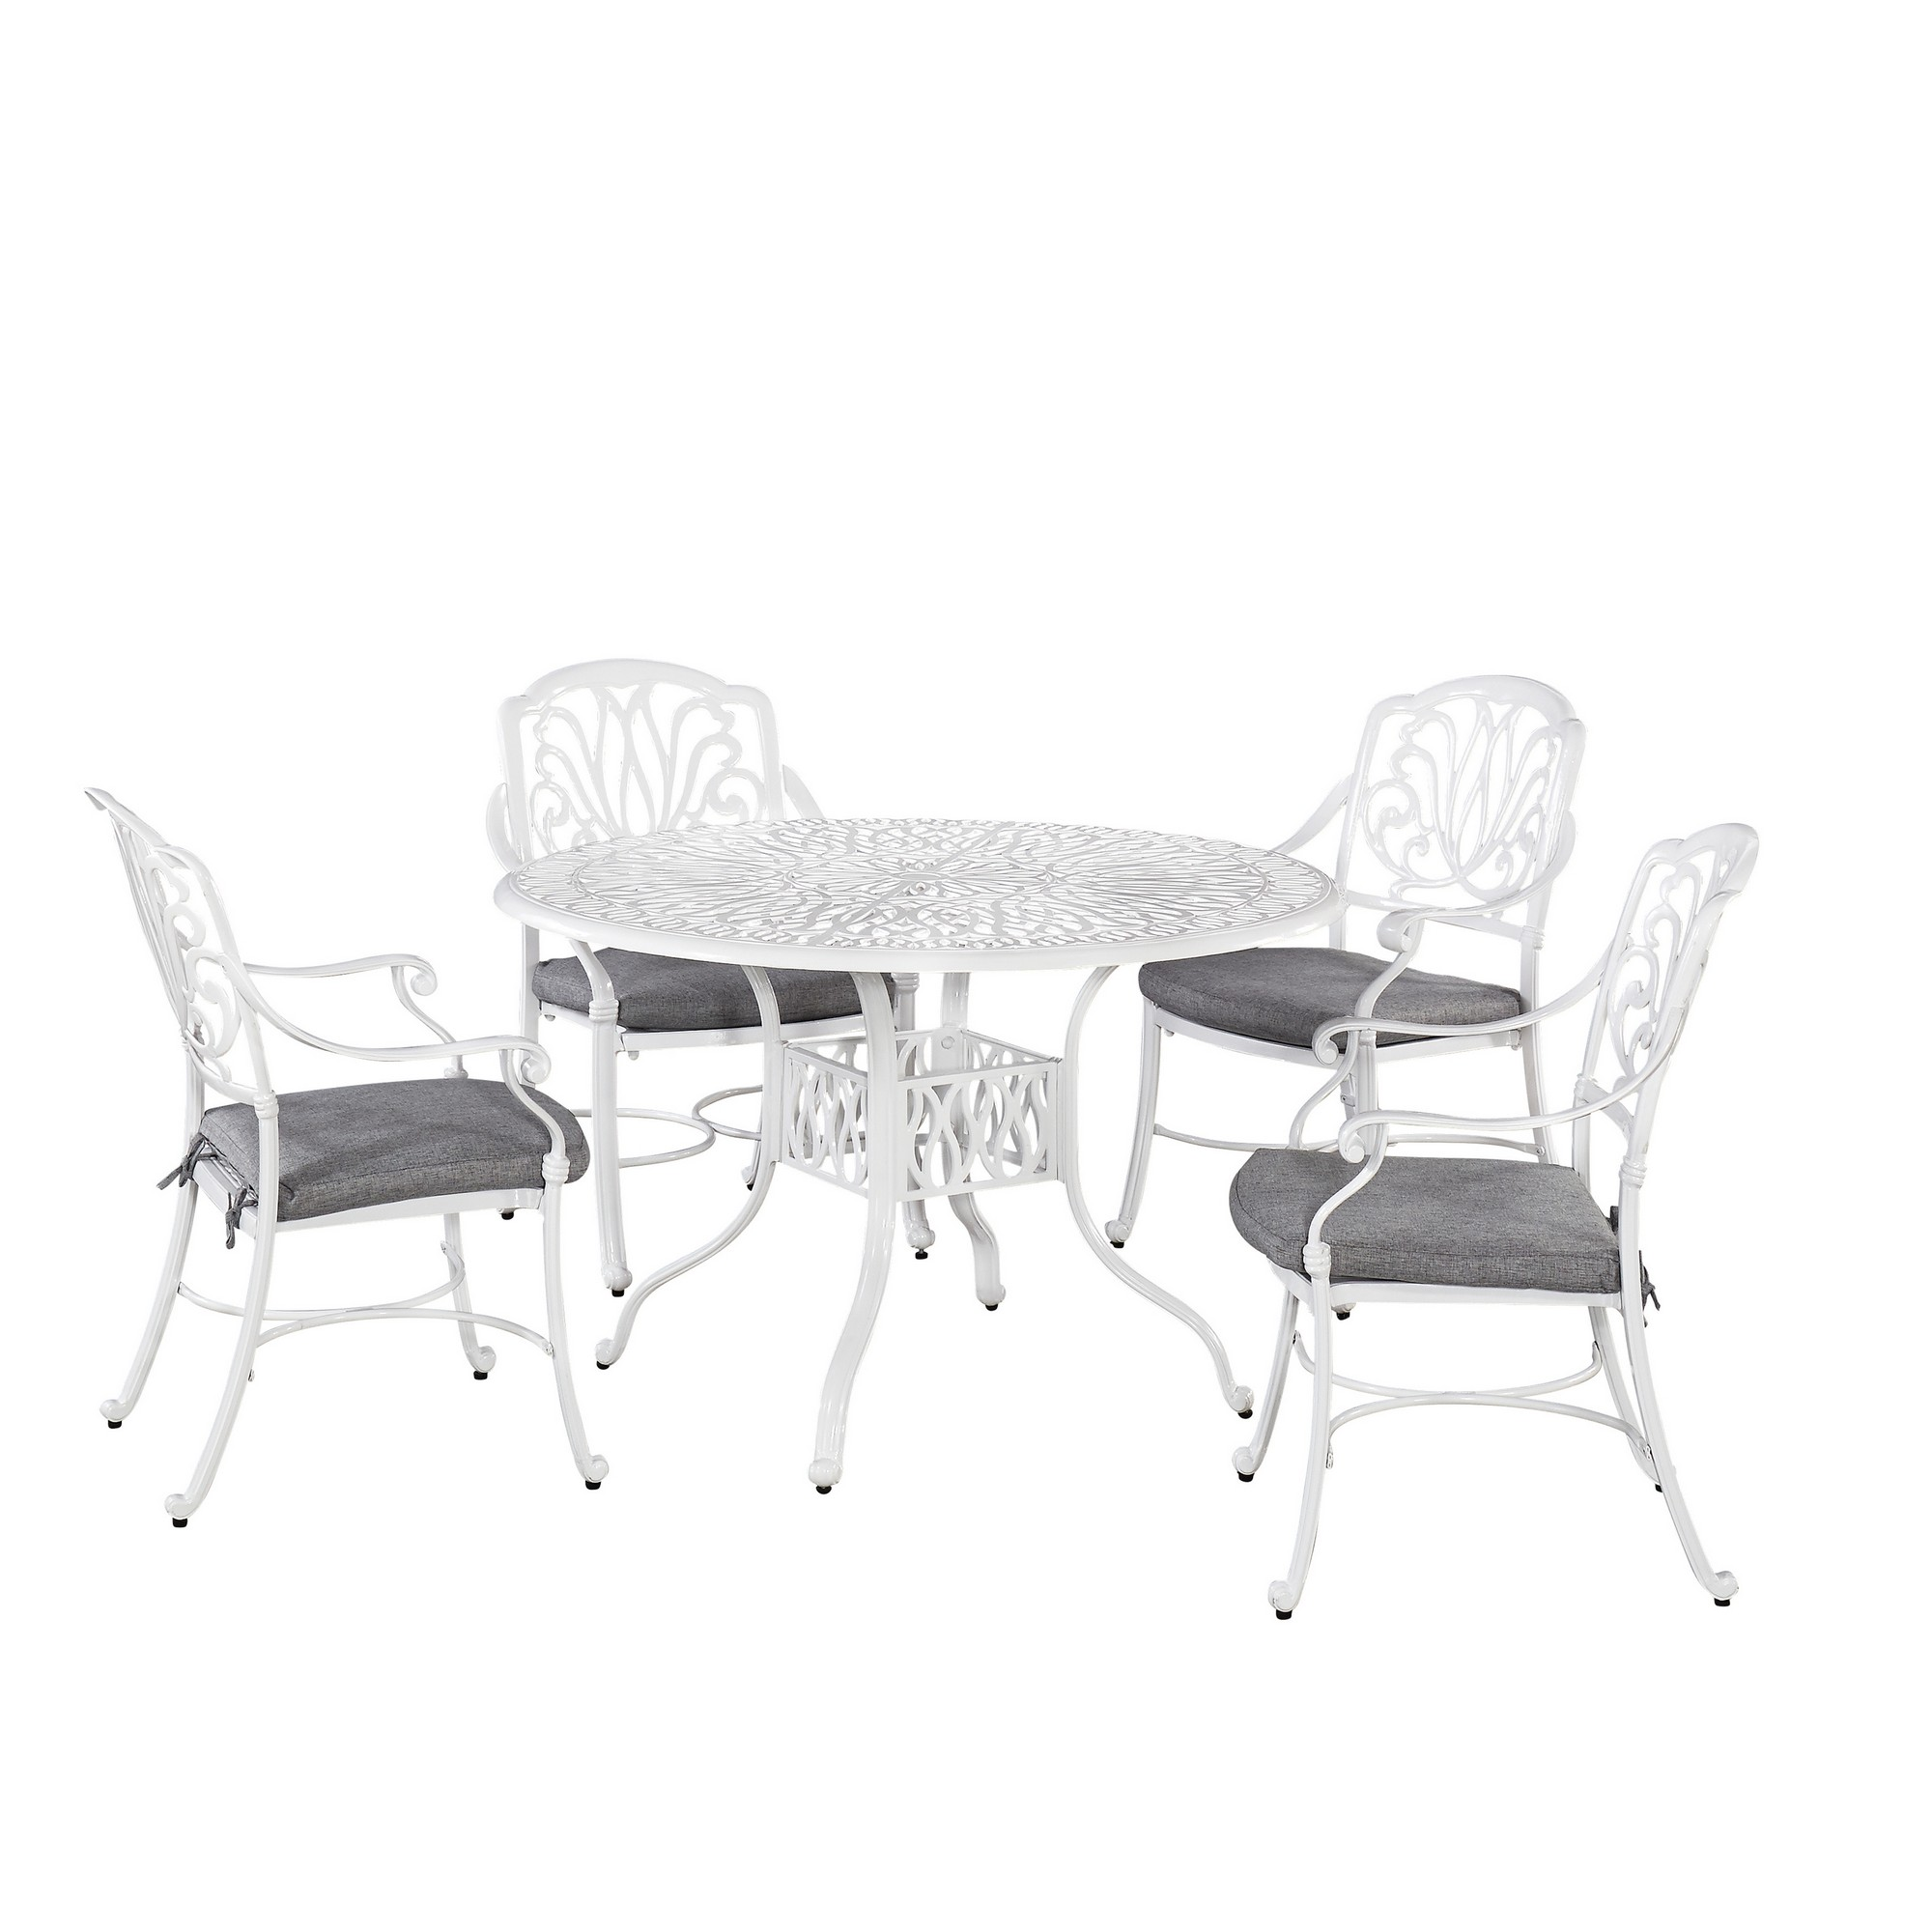 Capri 5 Piece Outdoor Dining Set by homestyles at Sam Levitz Outlet